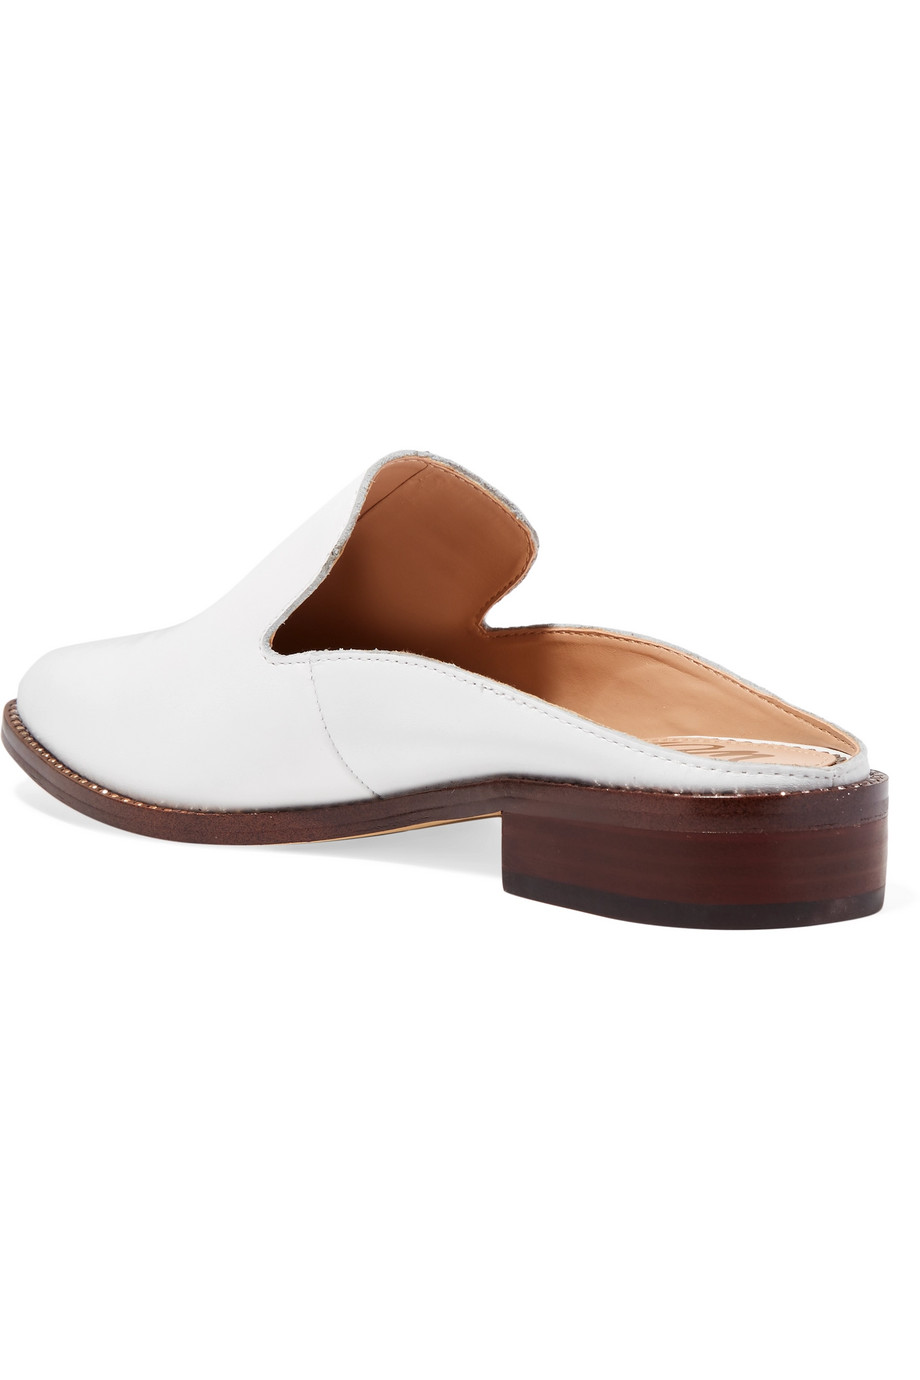 Leather slippers Sam Edelman buy Leather slippers Sam Edelman internet shop